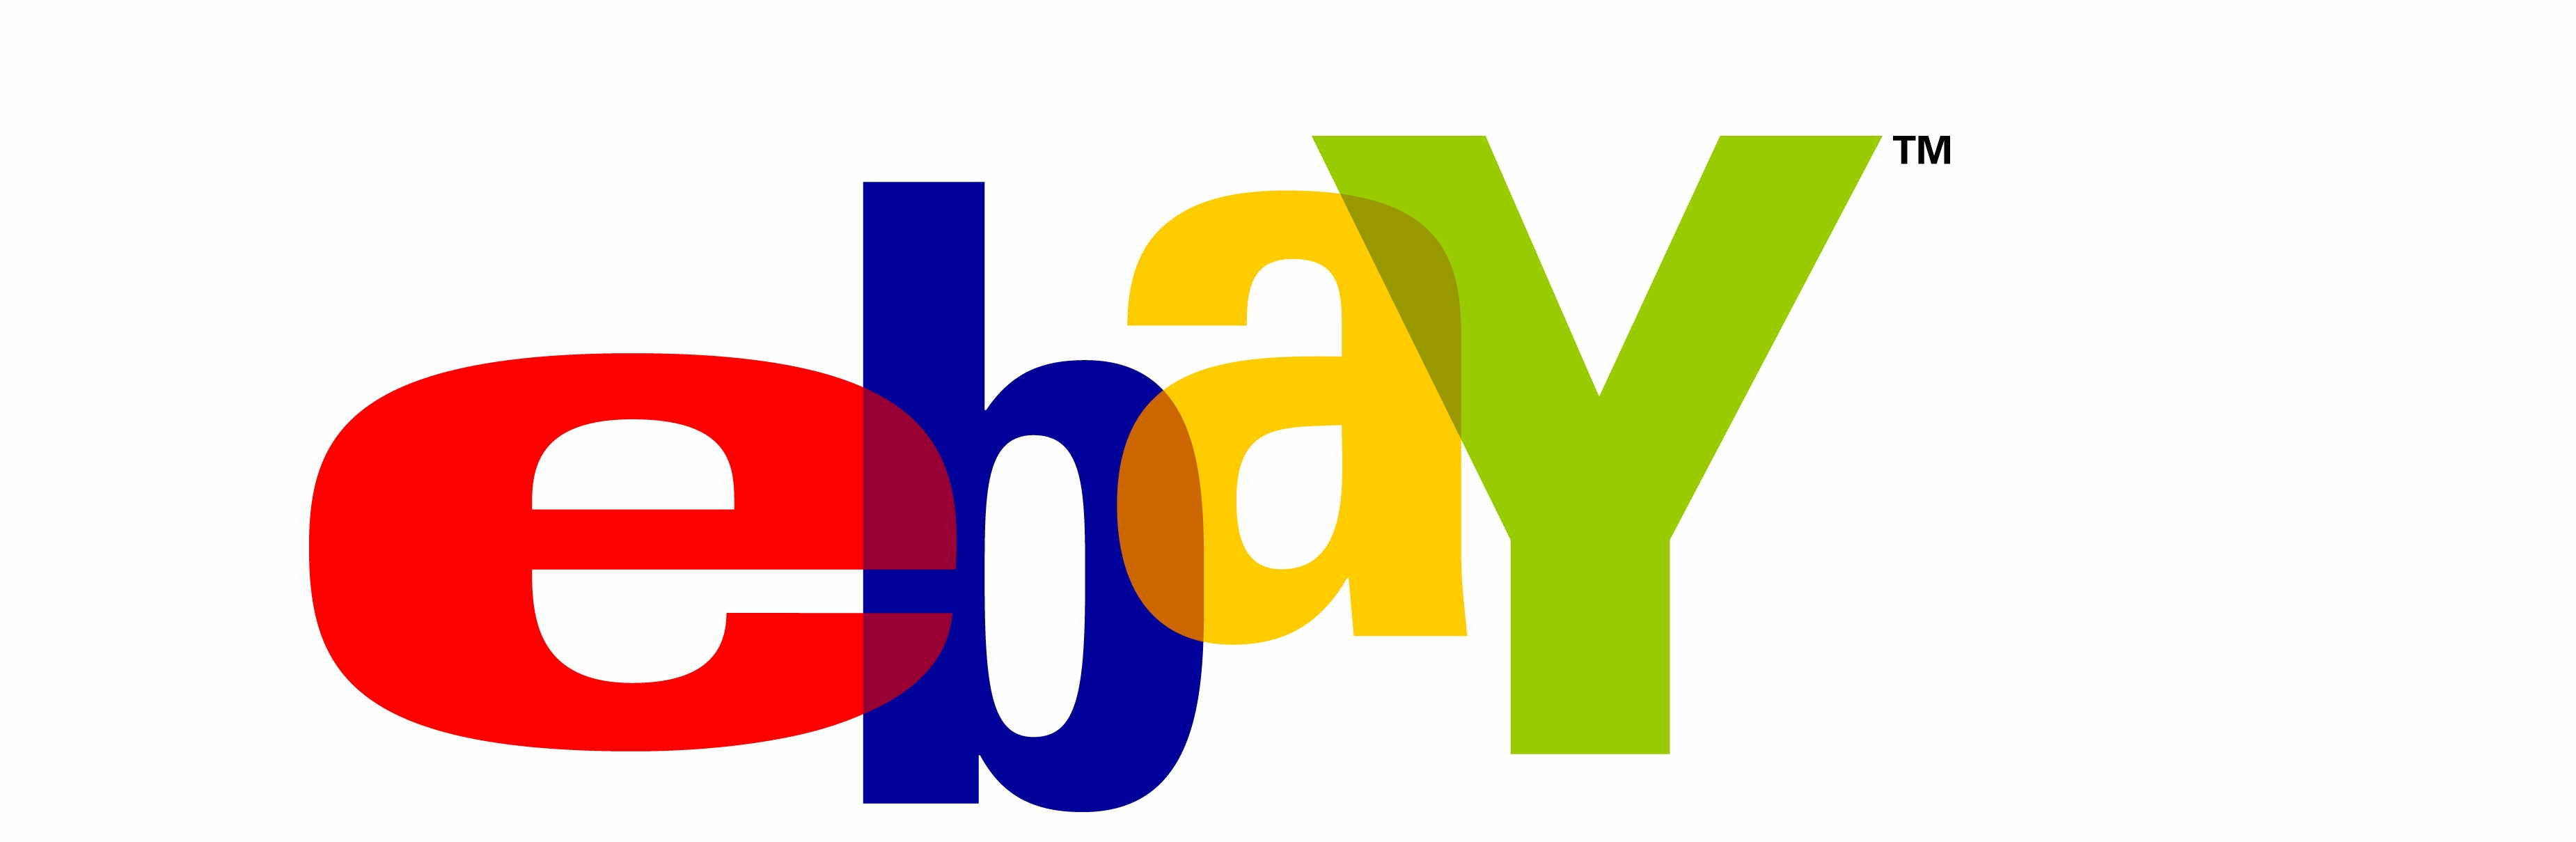 eBay now competes with the Amazon